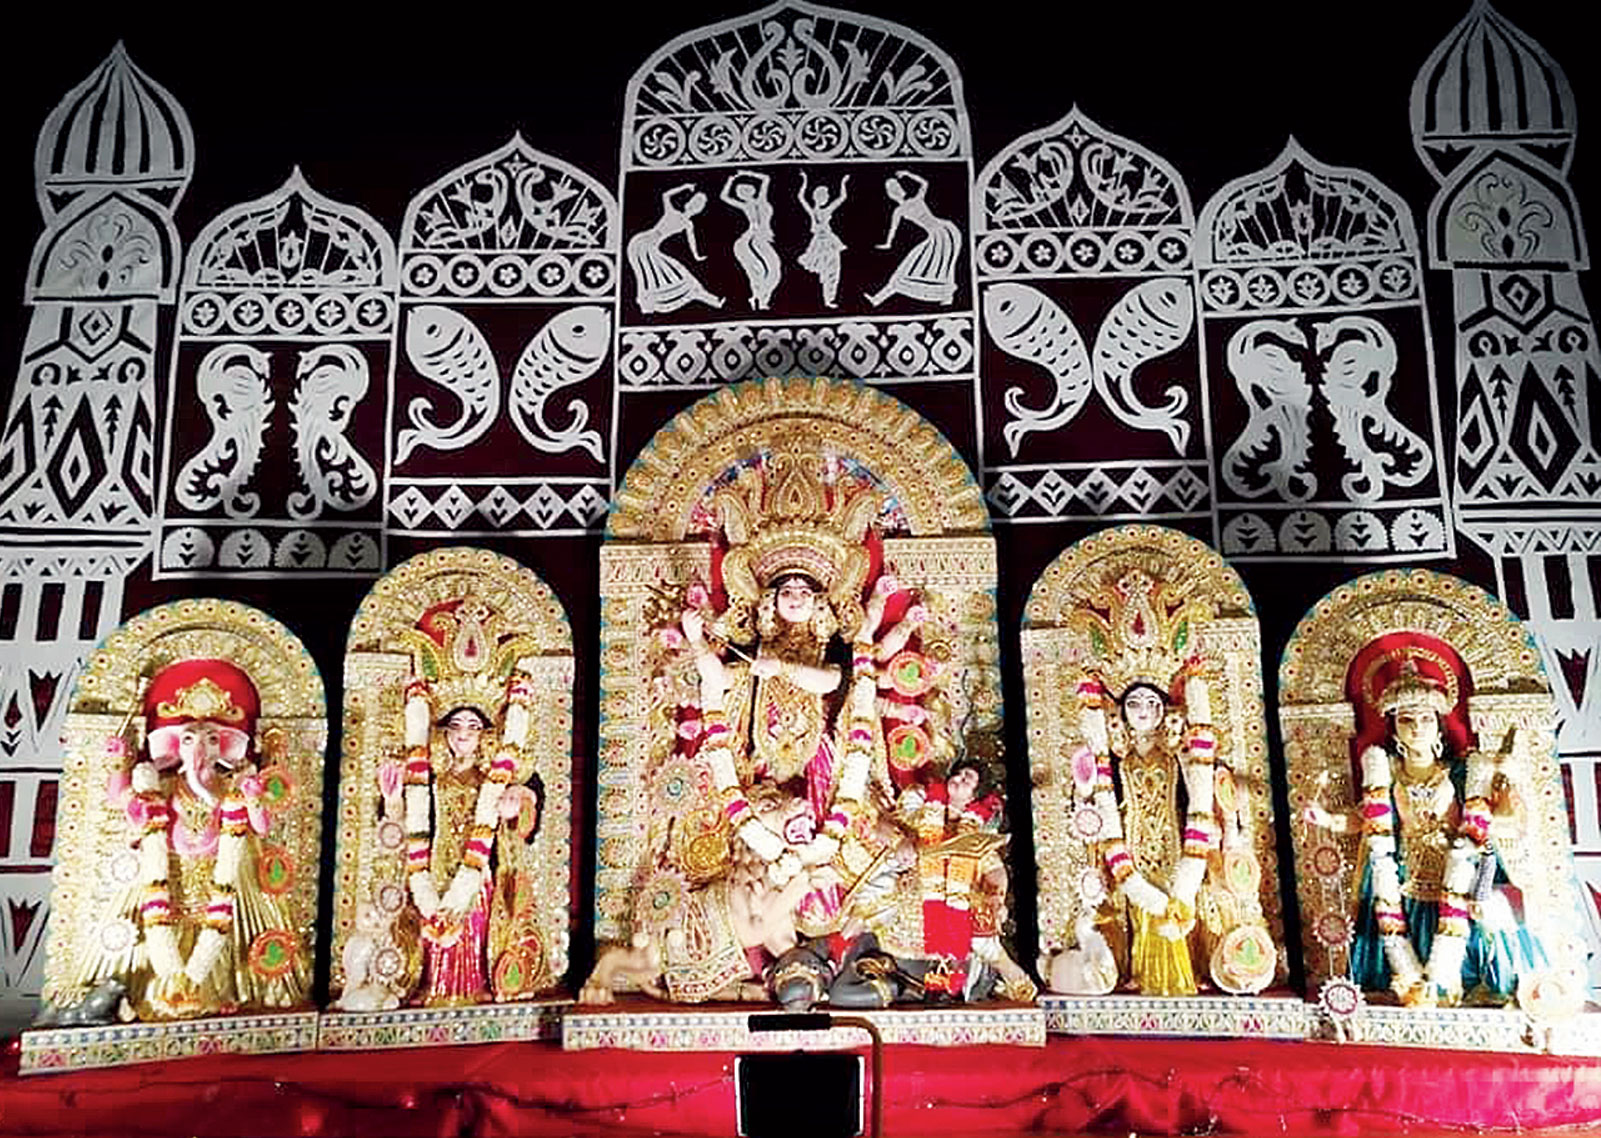 The Oslo Durga Puja is now 10 years old